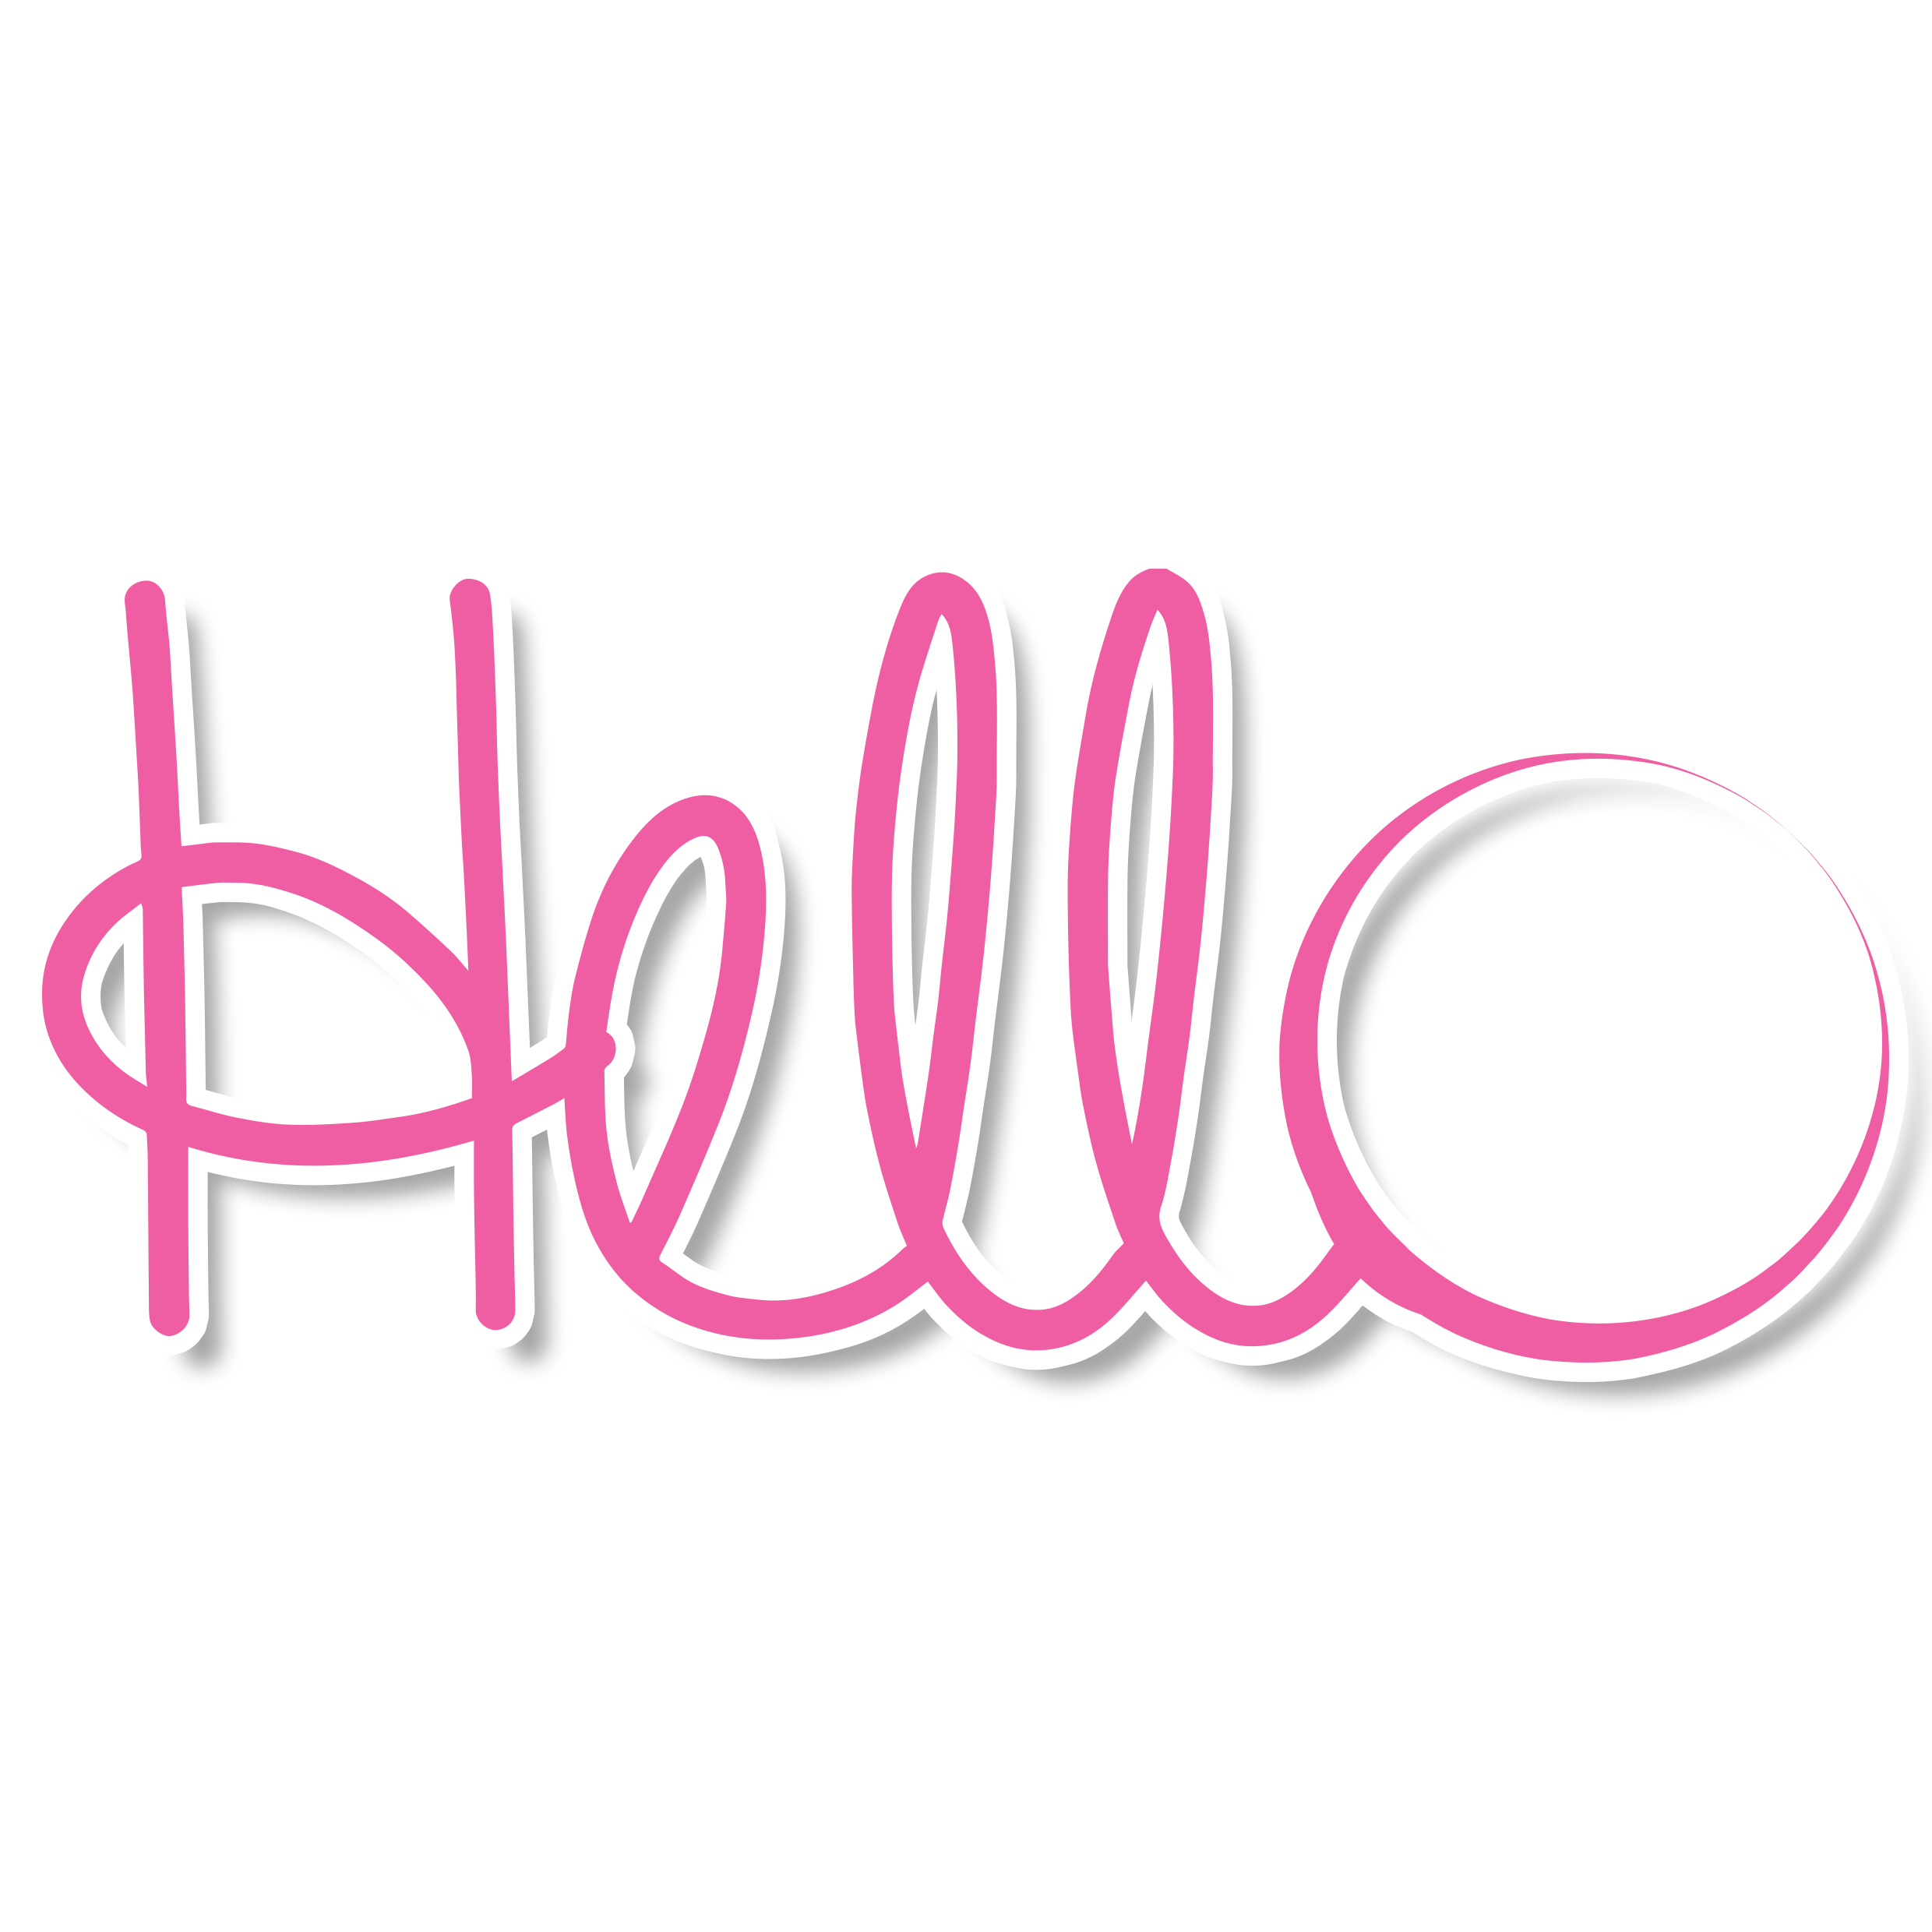 Hello transparent logo. Index of images new